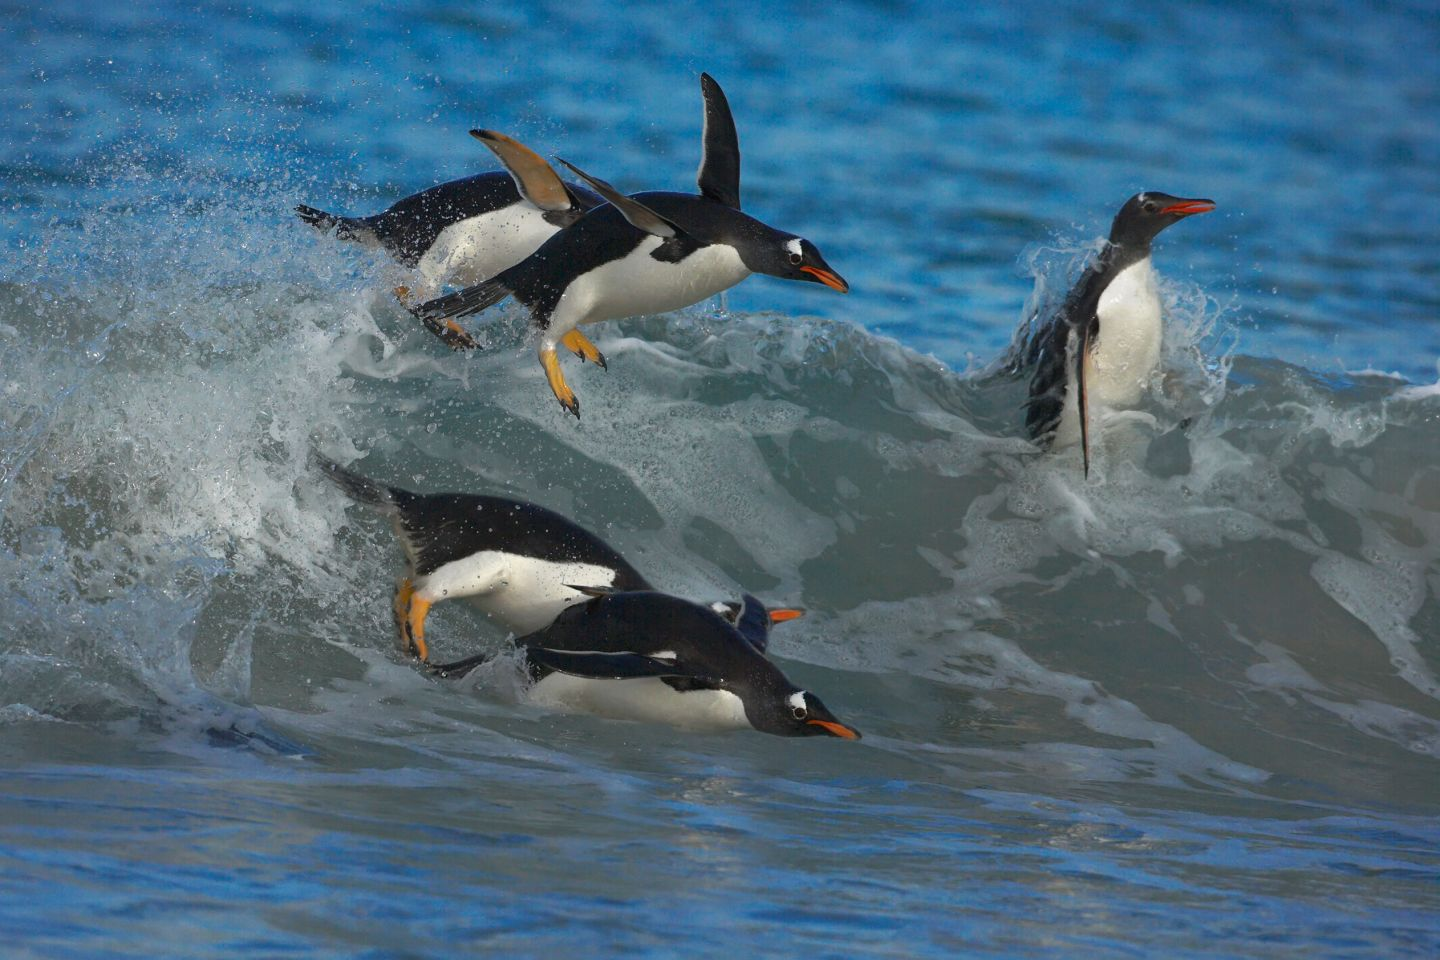 Penguins Swimming | Facts About Penguins | DK Find Out